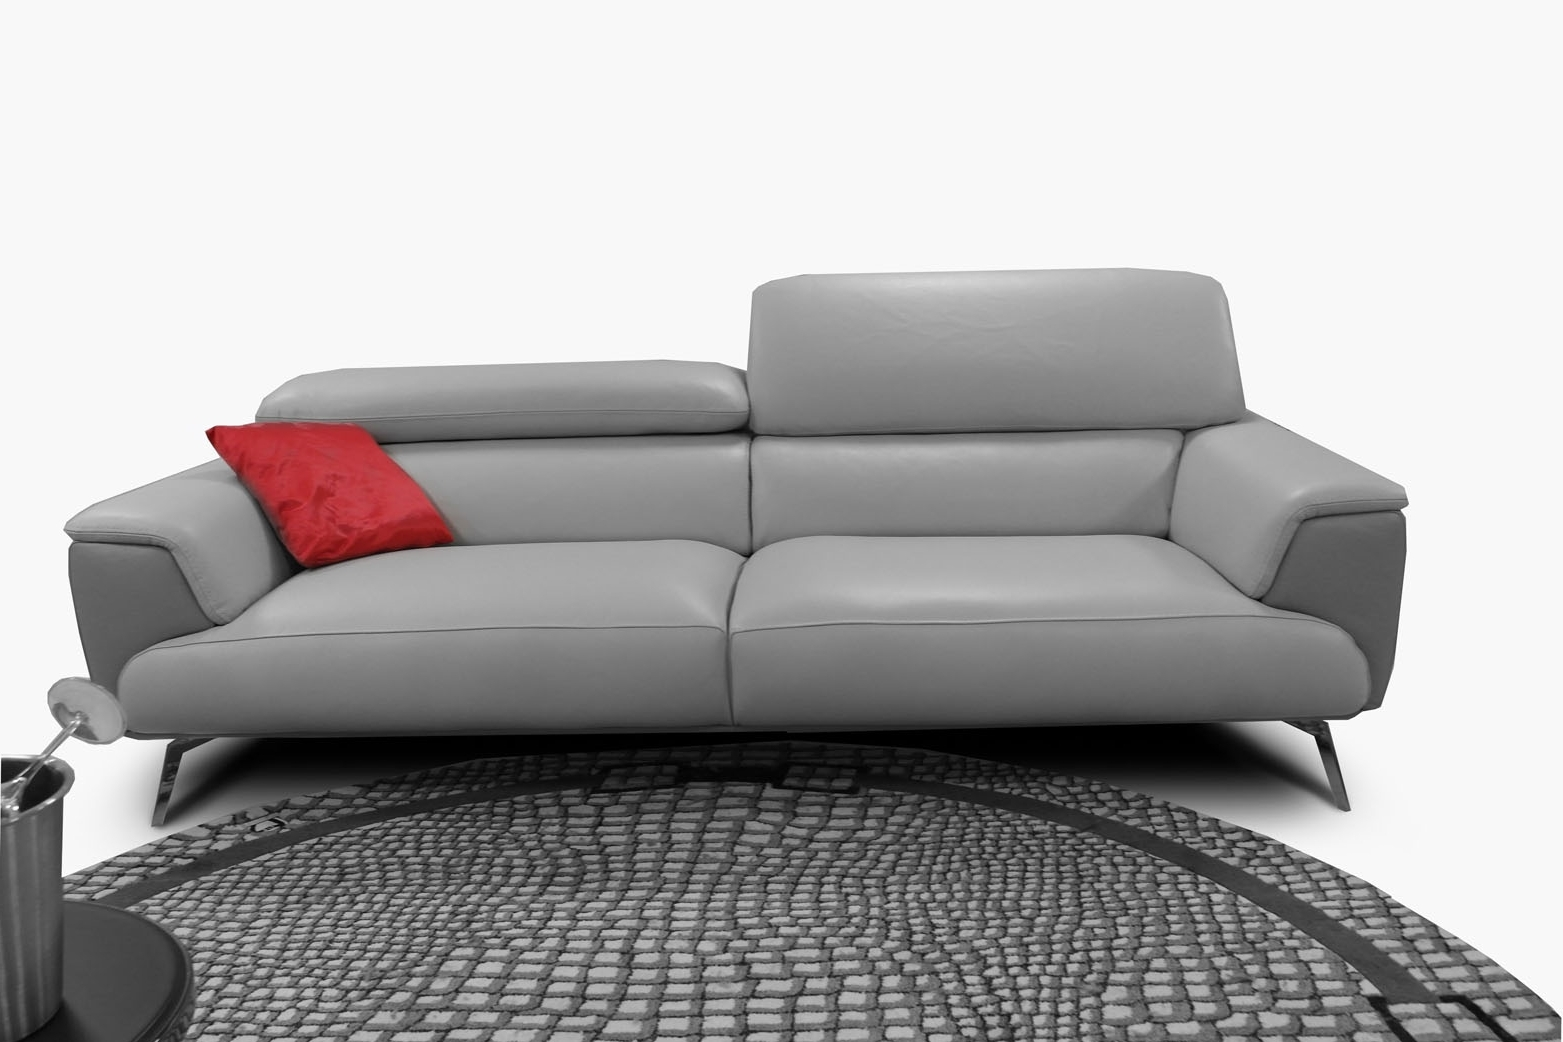 Well Known Round & Unusual Sofas • Nieribarcelona For Unusual Sofas (View 9 of 20)